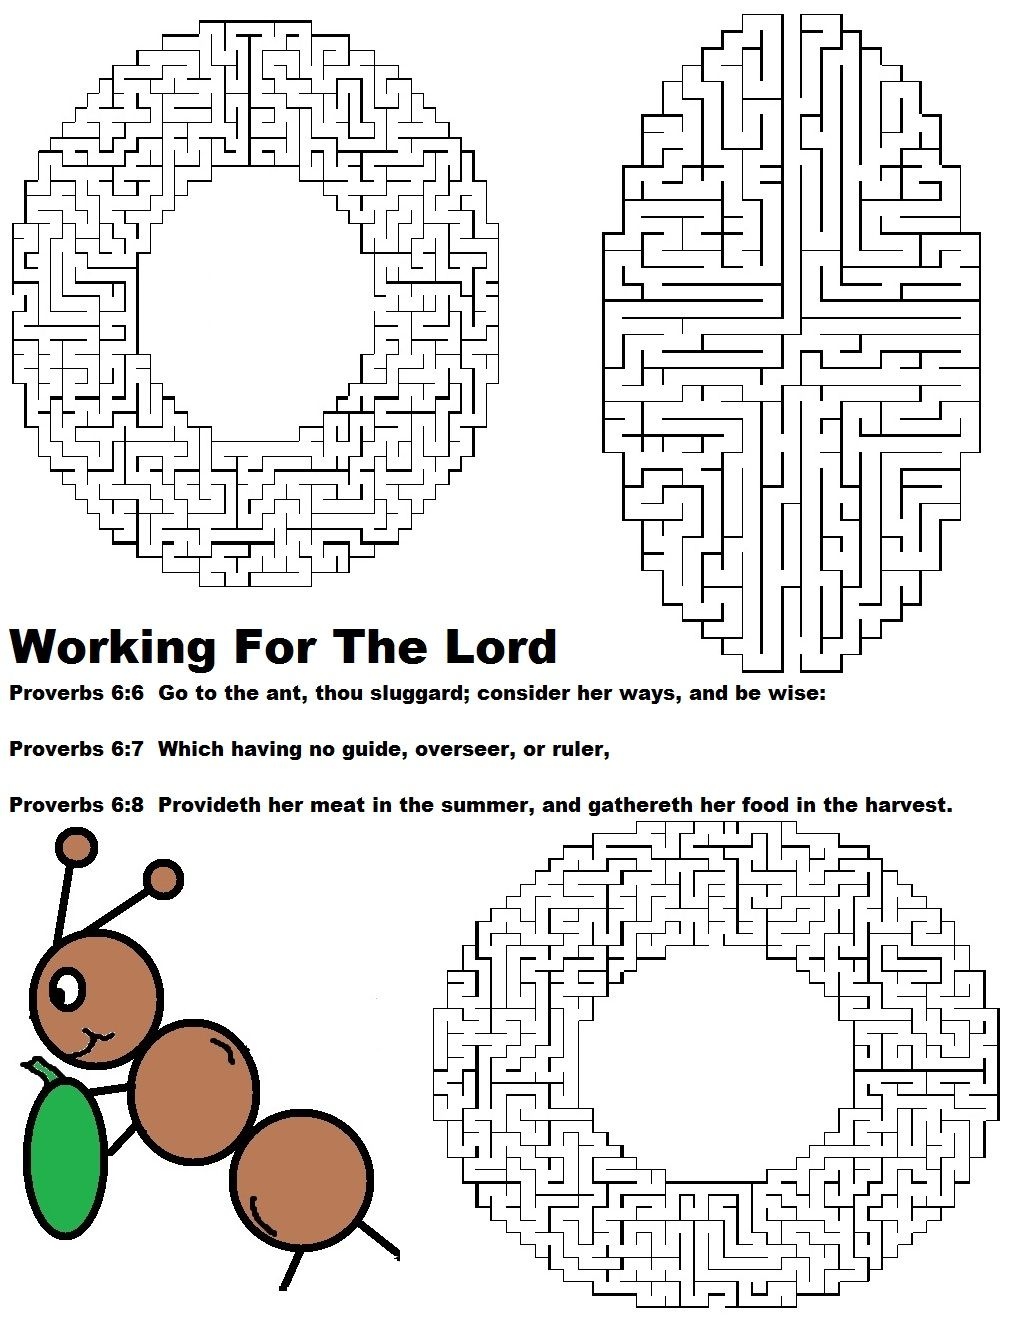 Ant Labor Day Working For The Lord Maze.jpg 1,019×1,319